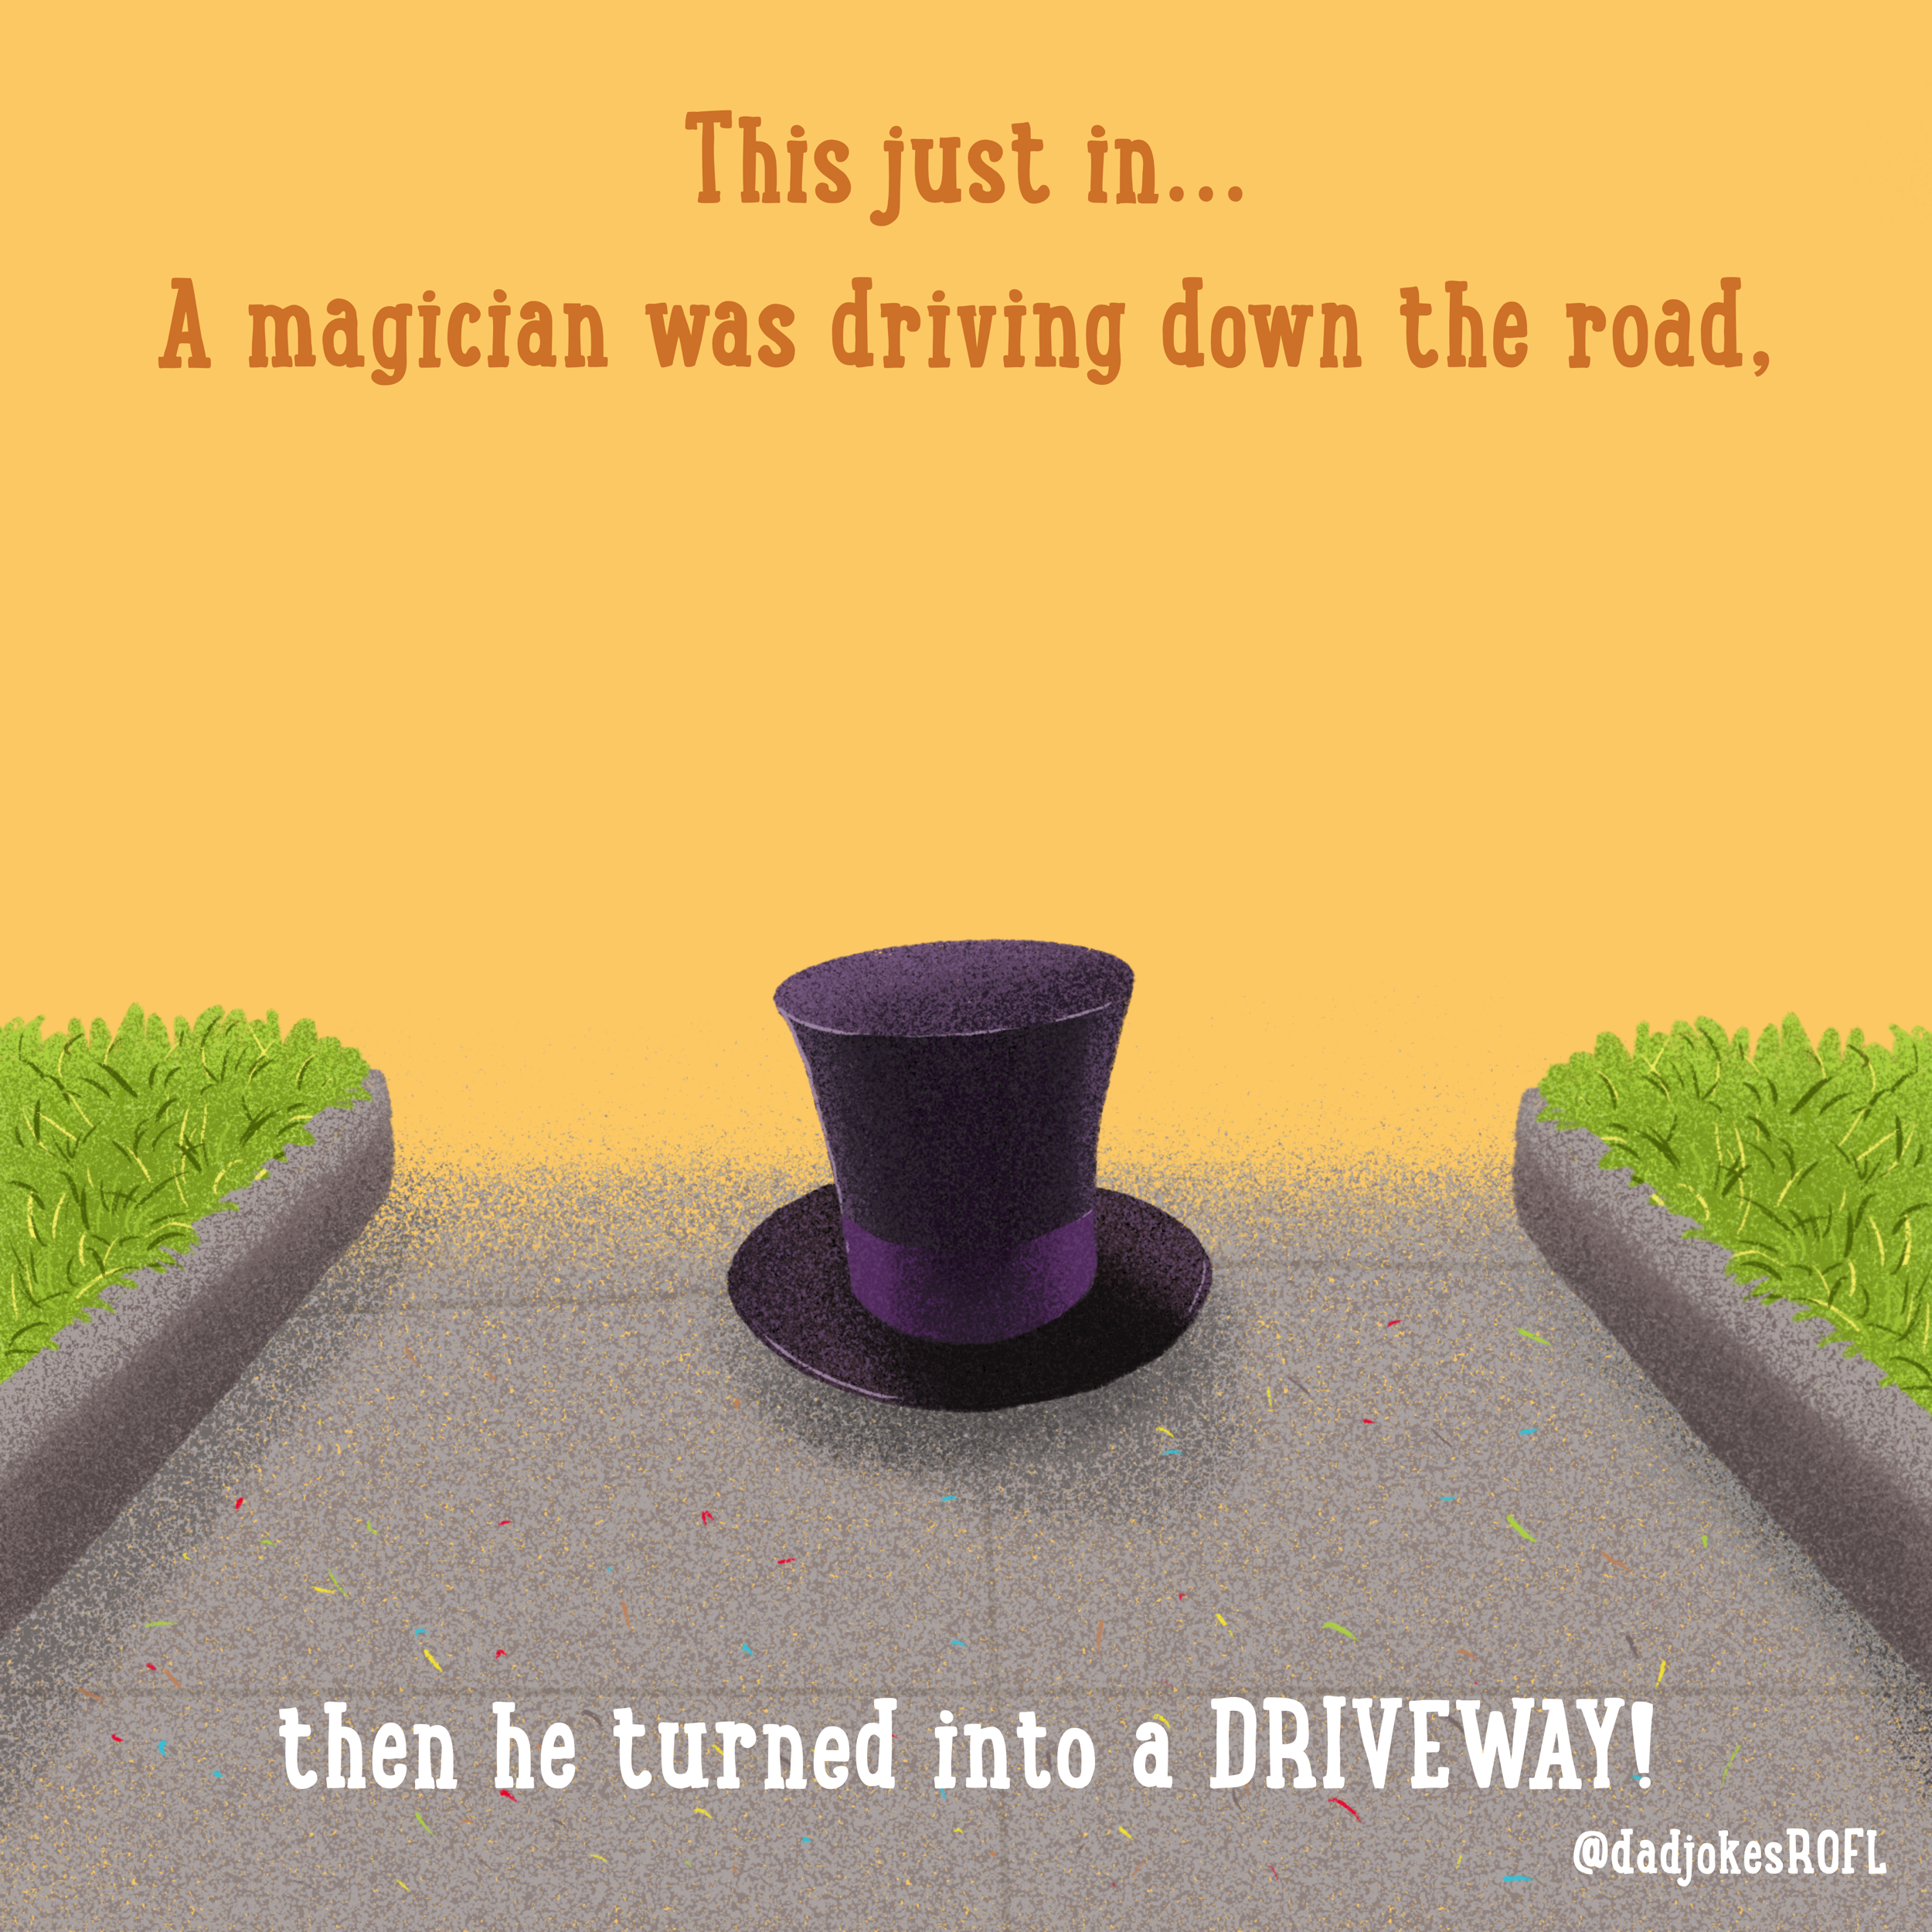 This just in... A magician was driving down the road, then he turned into a DRIVEWAY!